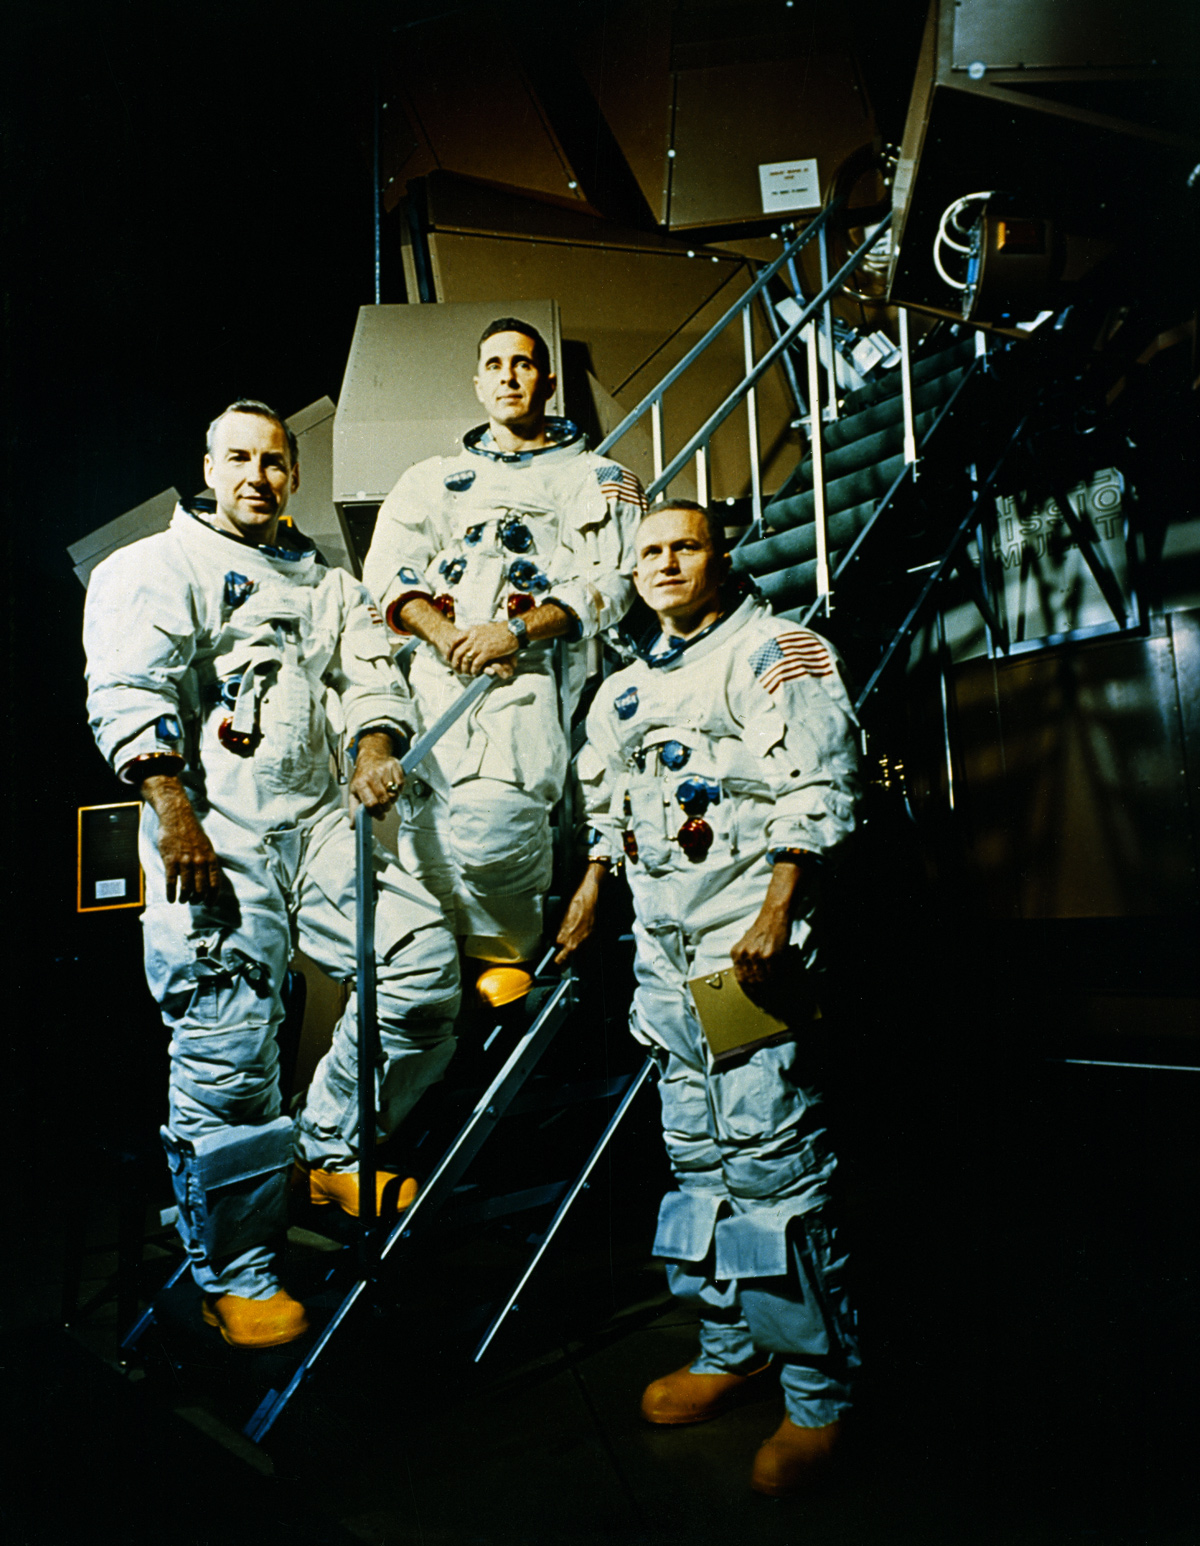 Crew of Apollo 8 mission